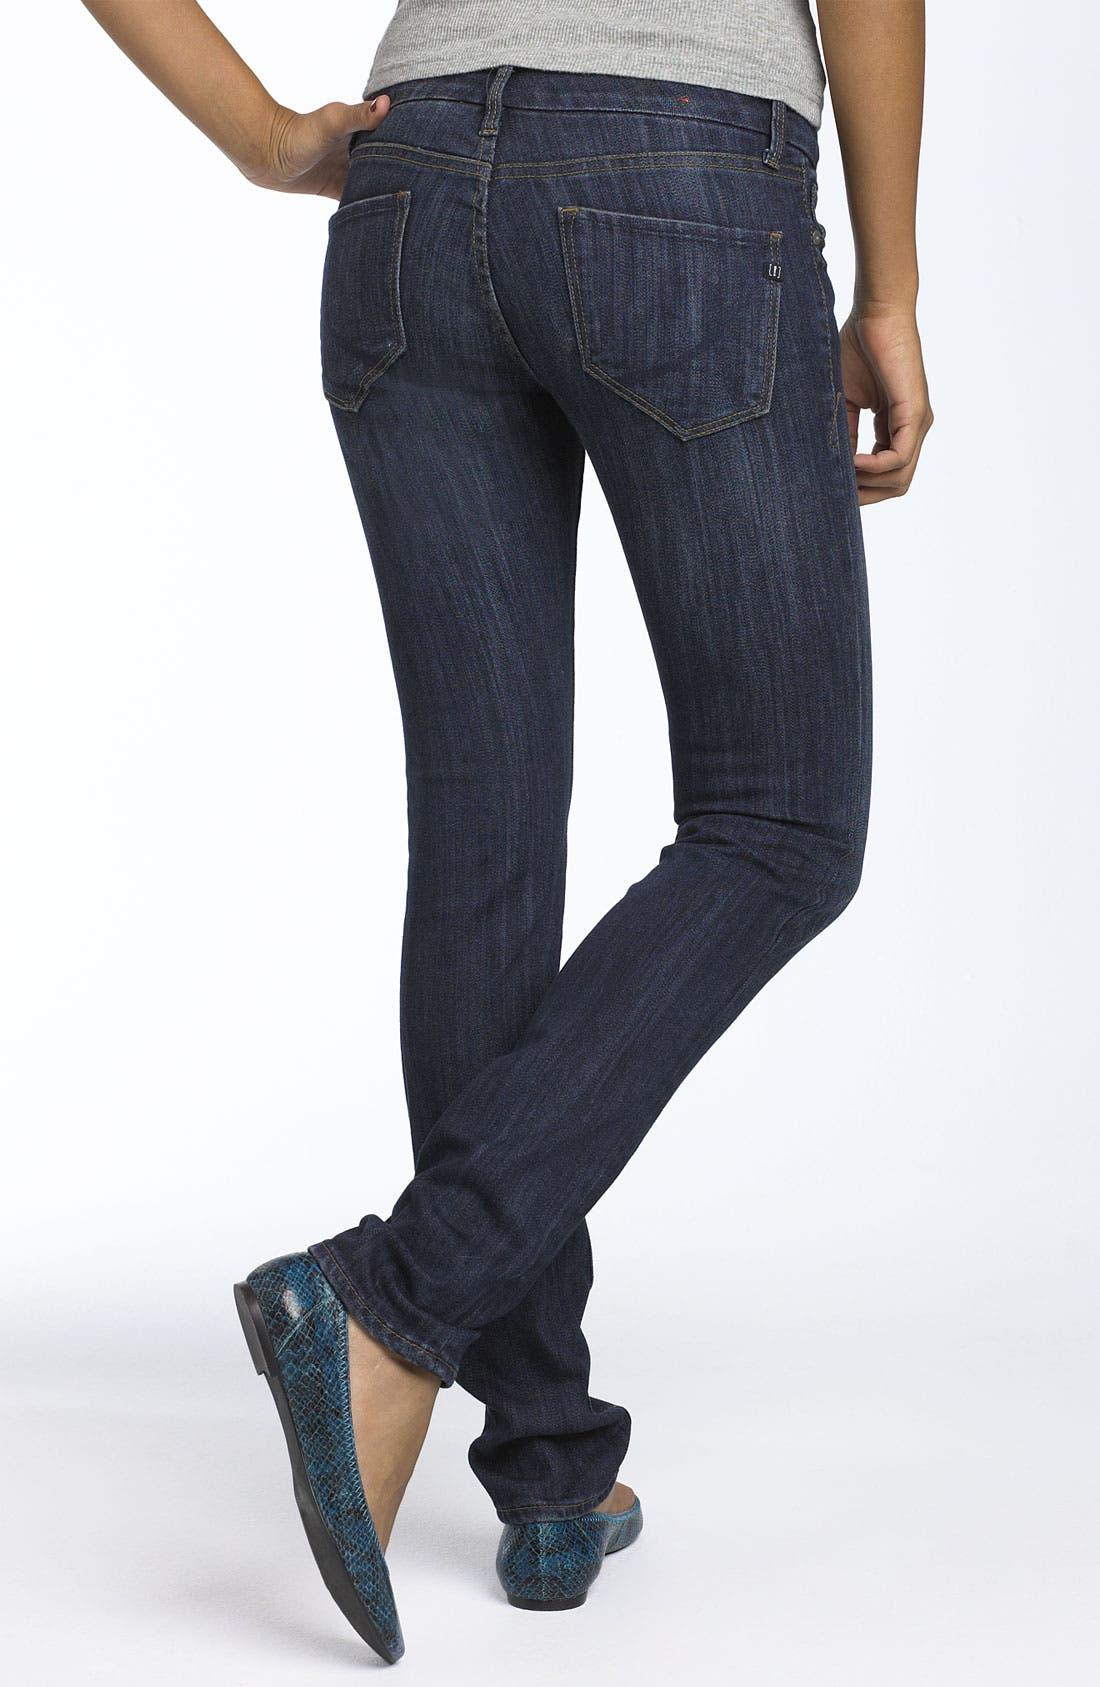 !iT JEANS 'Rising Starlet' Skinny Stretch Jeans,                         Main,                         color, Blue River